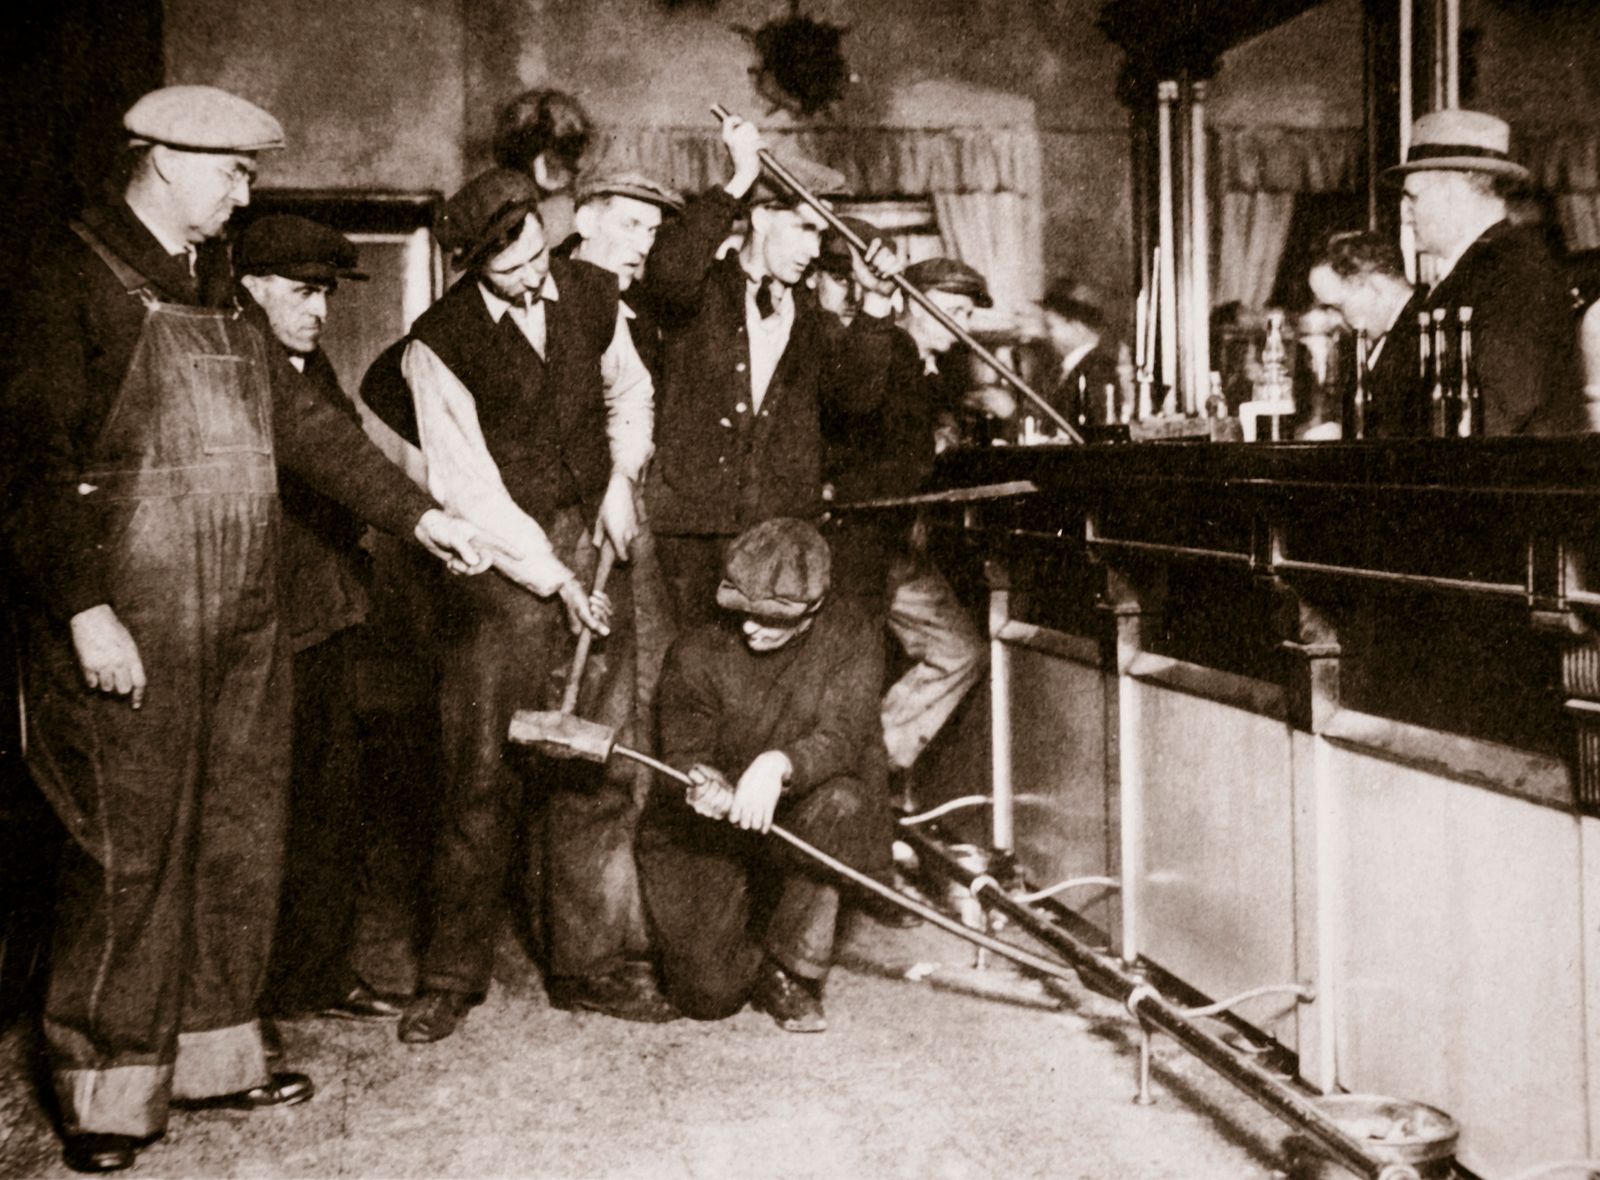 Prohibition - A bar in Camden, New Jersey, being forcibly dismantled by dry agents, USA, 1920s.